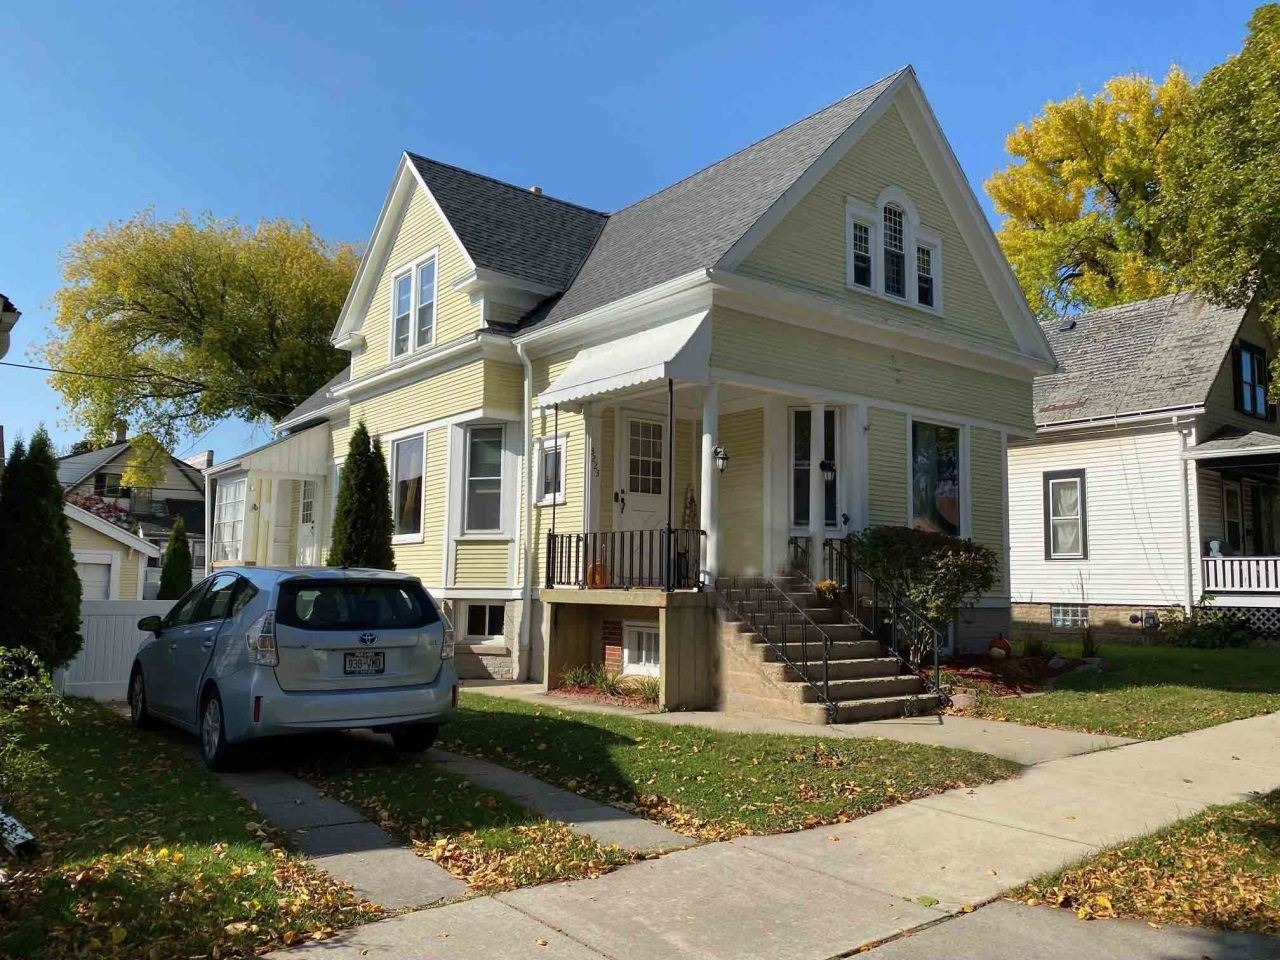 3223 S Griffin Ave, Milwaukee, WI 53207 - #: 1713116